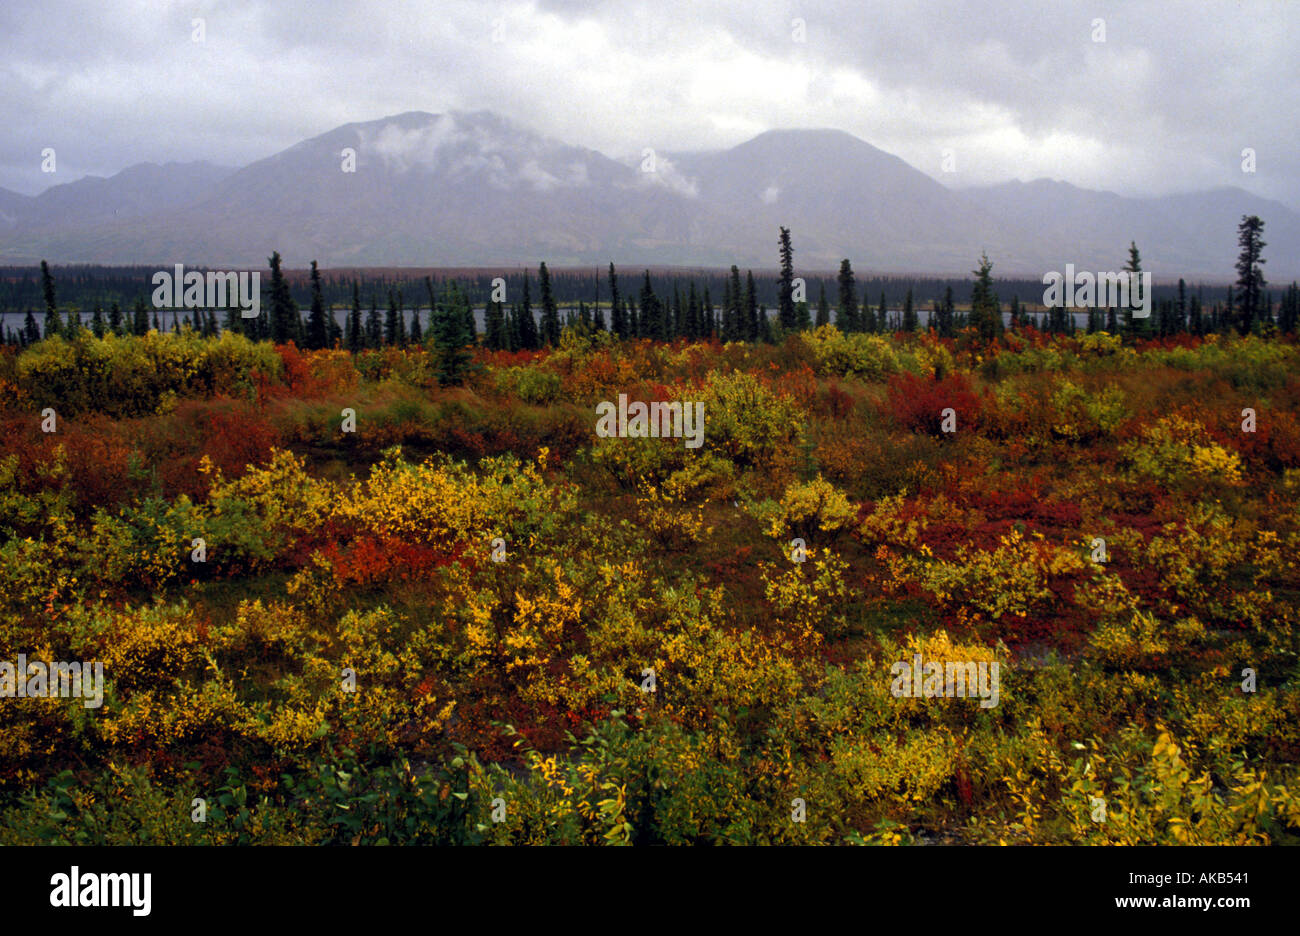 Vertical pines and autumn hues of red green and yellow color a countryside as mountains reach into clouds  - Stock Image